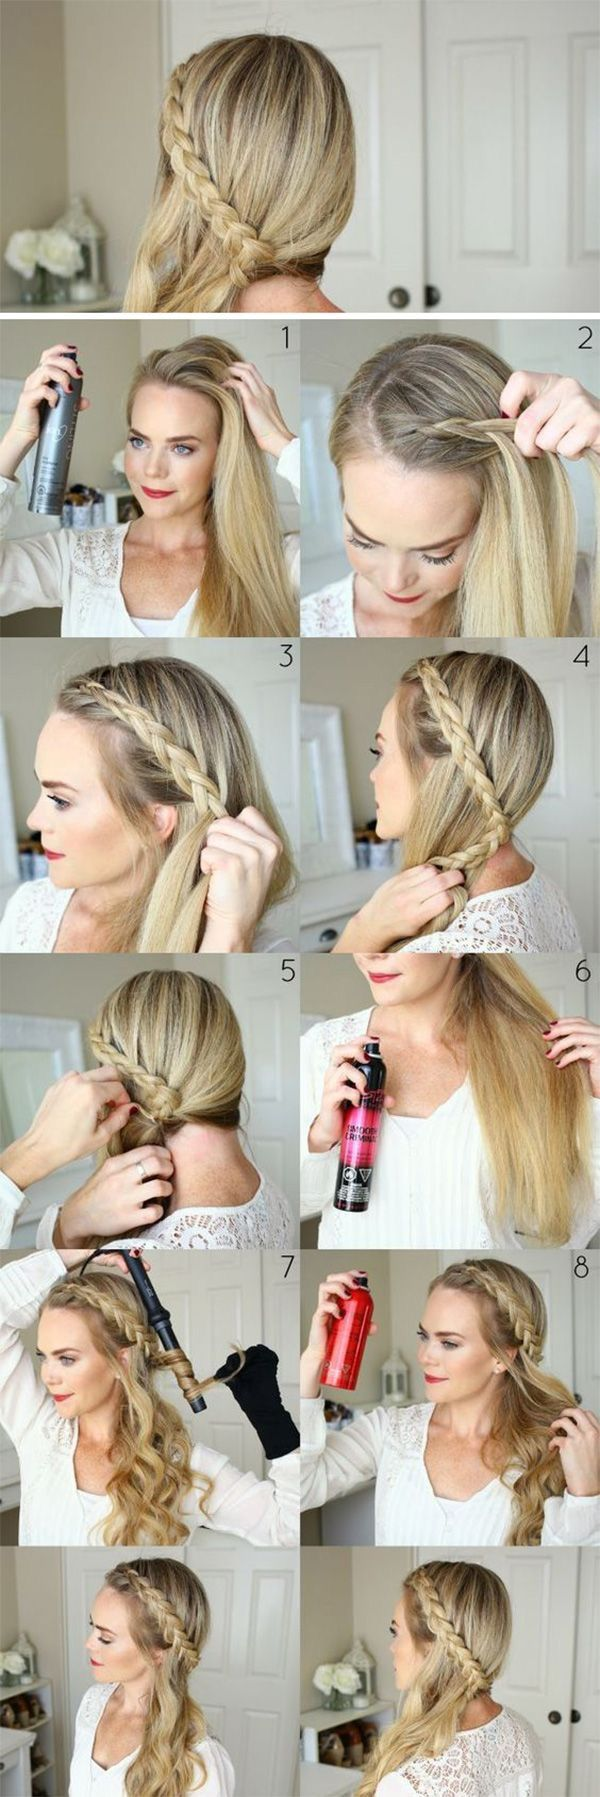 Pin by sion Kim on 헤어 Pinterest French braid Shoulder and